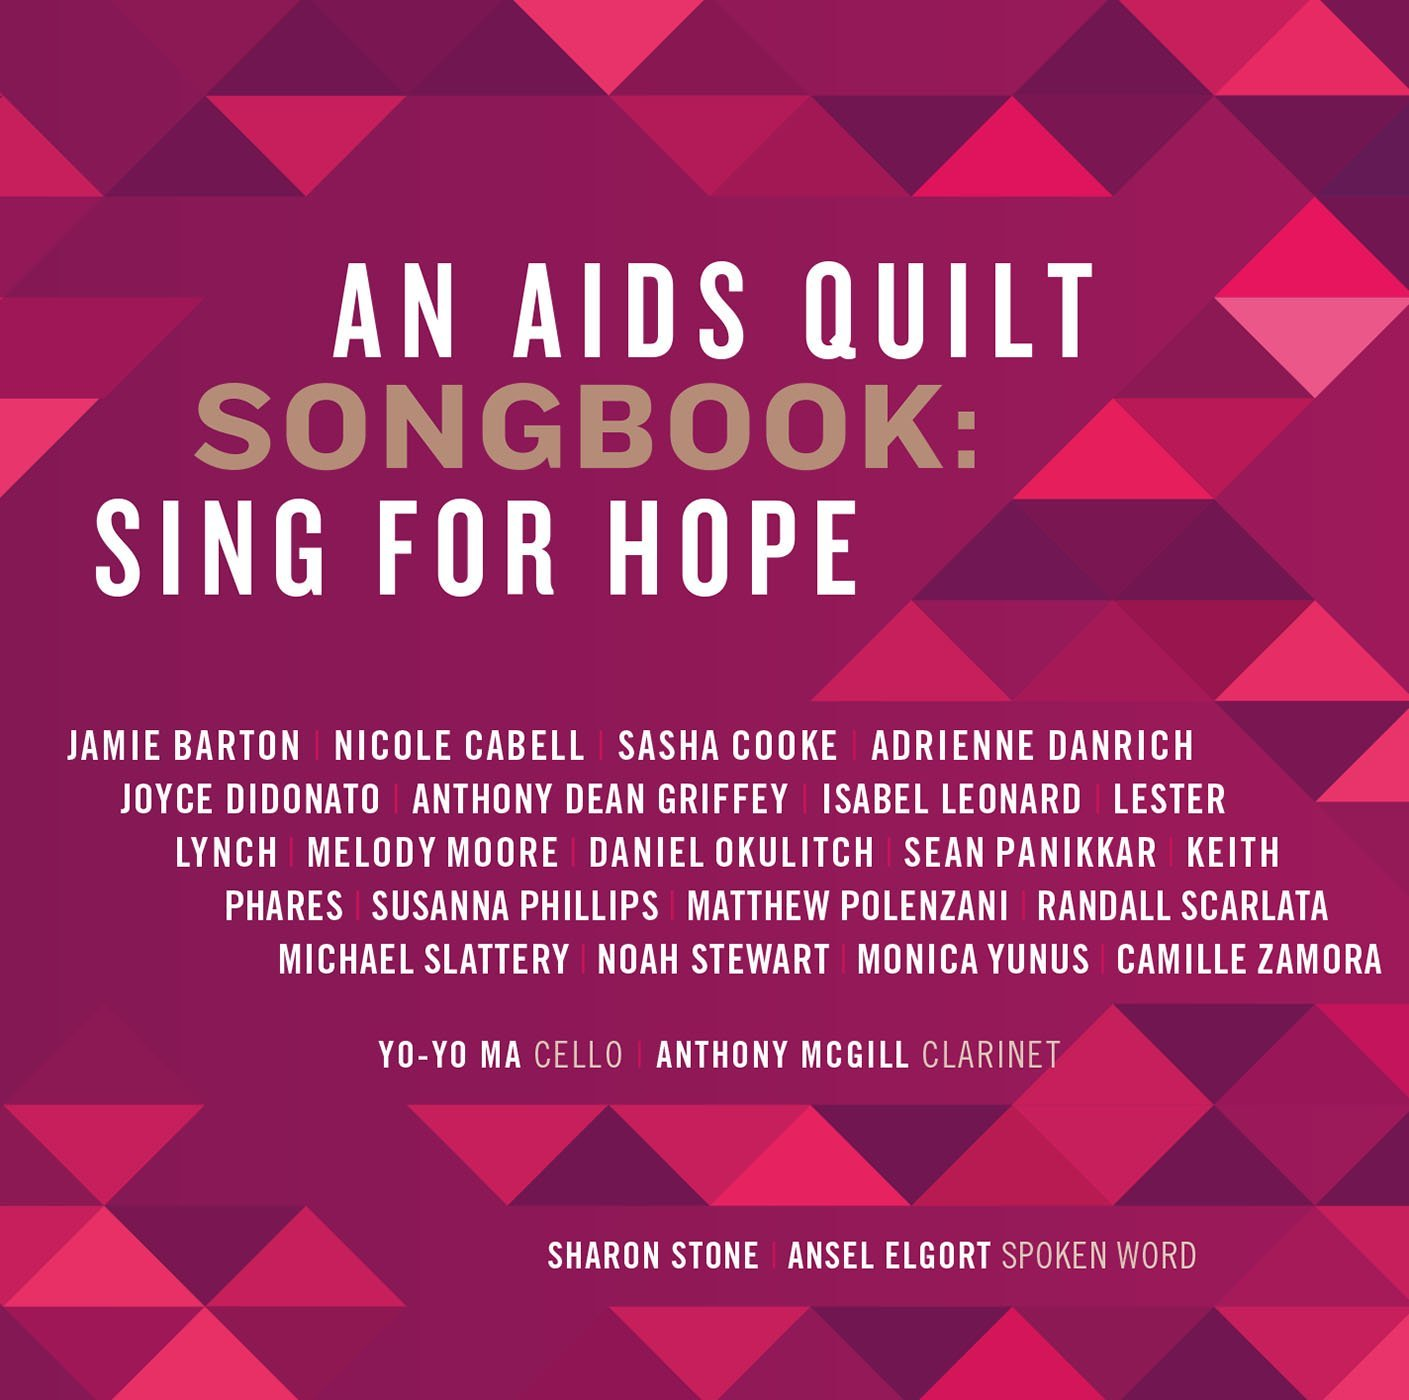 AIDS Quilt Songbook: Sing for Hope